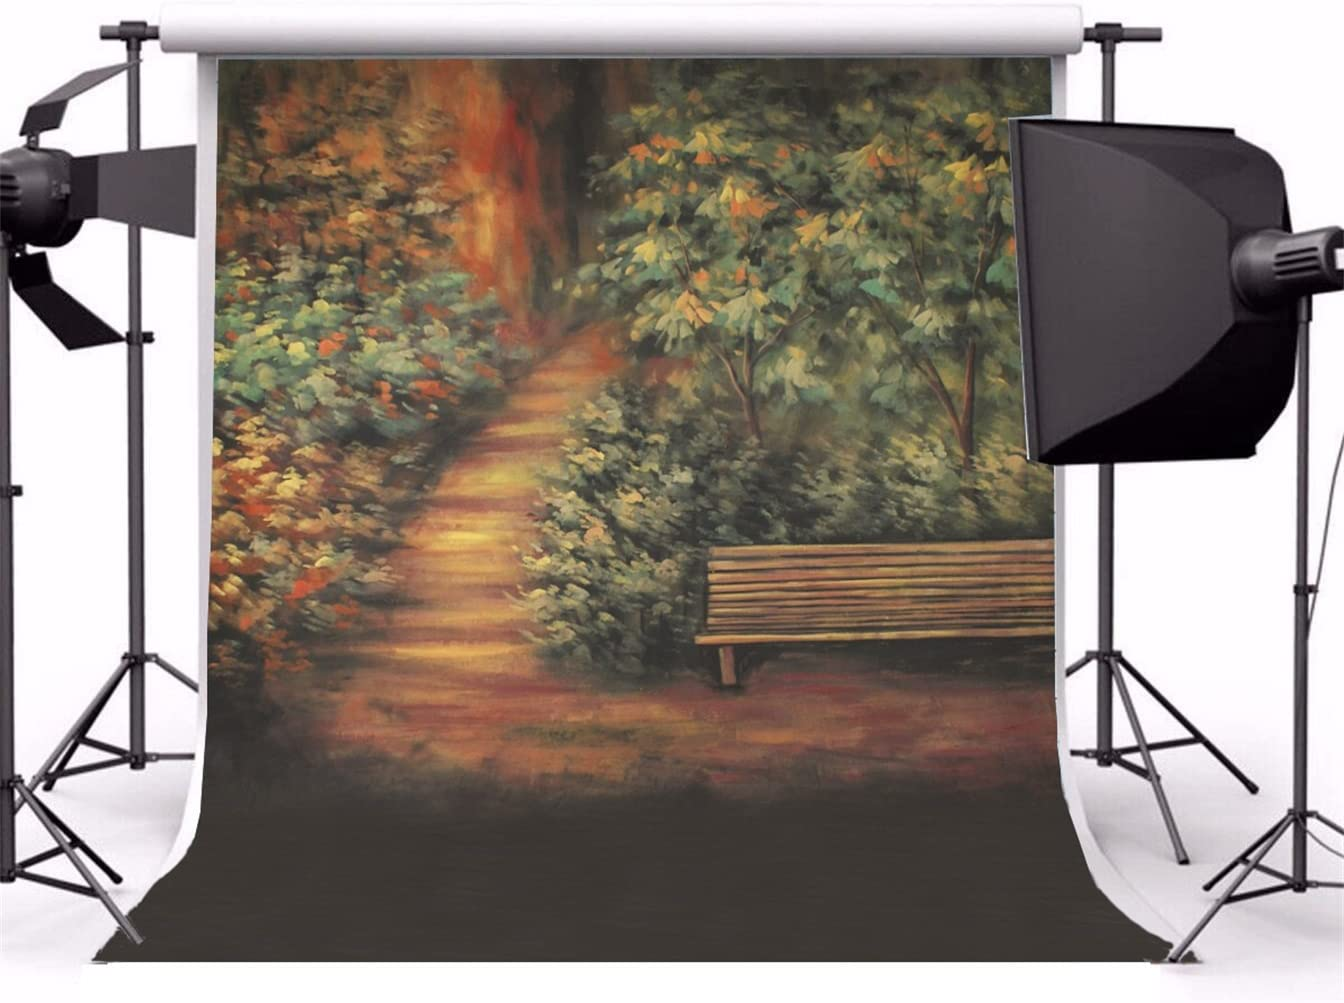 AOFOTO 10x10ft Oil Painting Backdrop Photography Background Blurry Trees Hazy Park Path Bench Toddler Adult Girl Boy Portrait Scene Artistic Photo Shoot Studio Props Video